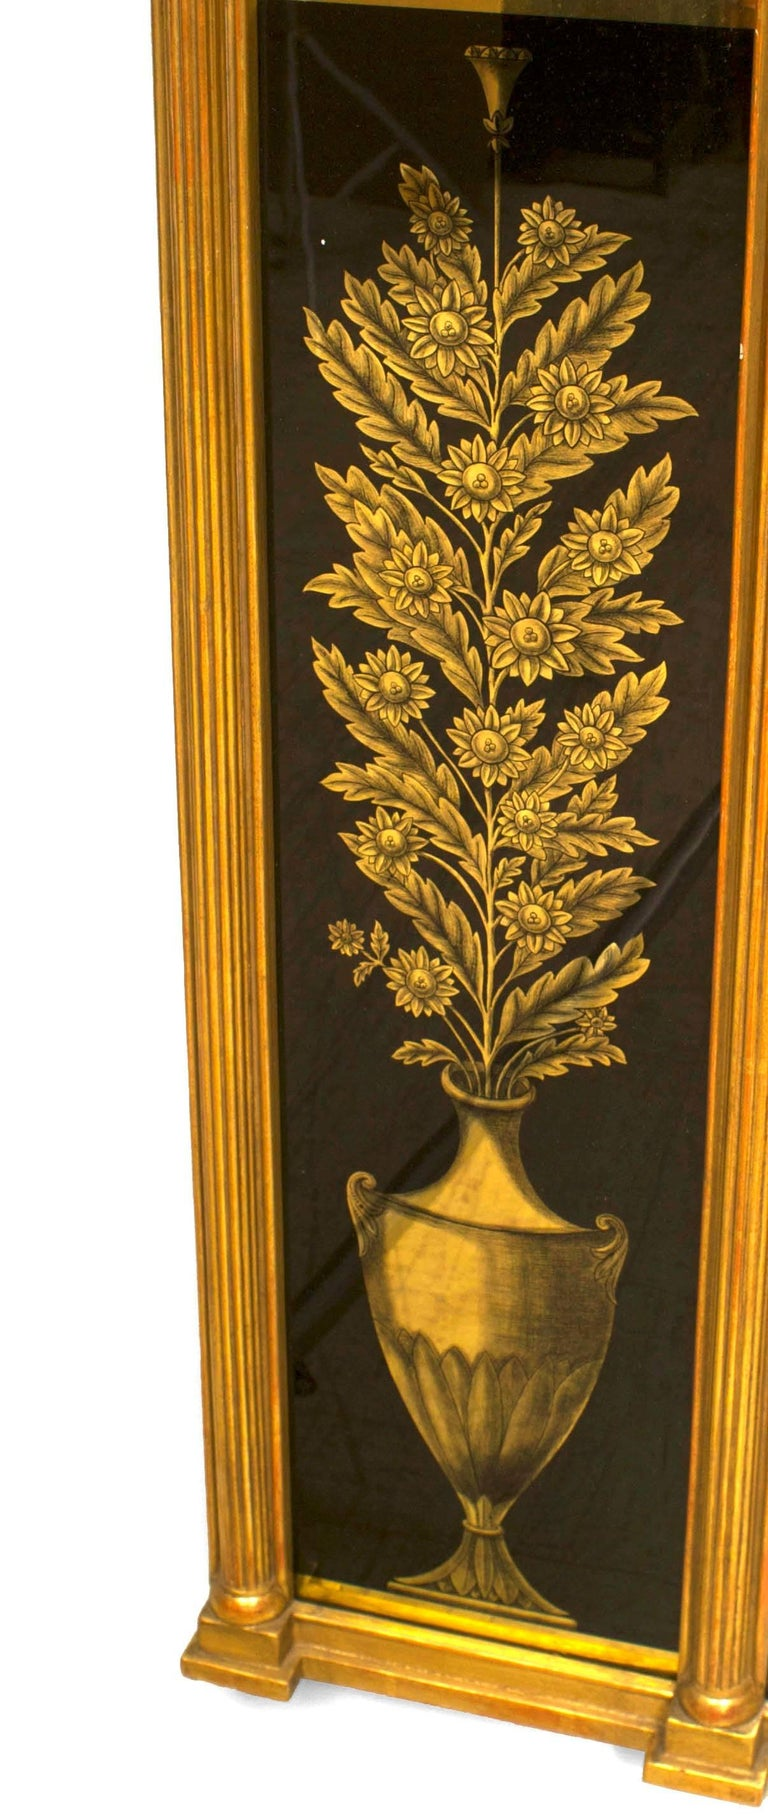 19th Century Italian Neo-classical Wall Mirror Framed in Reverse Painted Glass For Sale 3